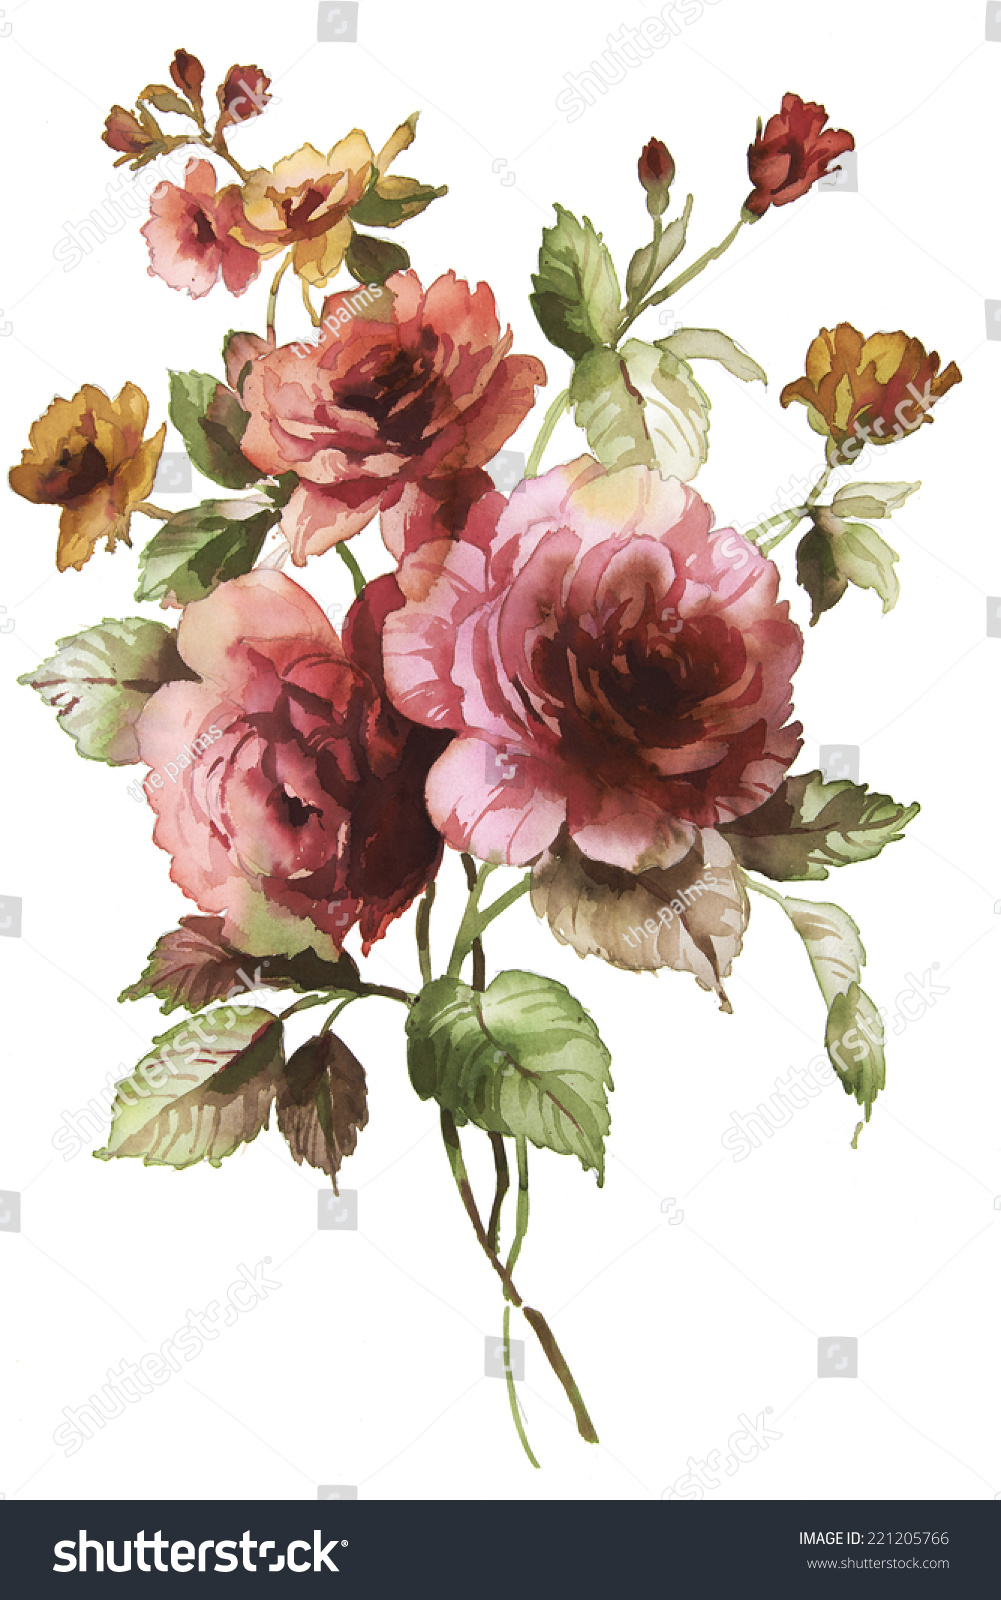 Color Illustration Flowers Watercolor Paintings Stock Illustration ...